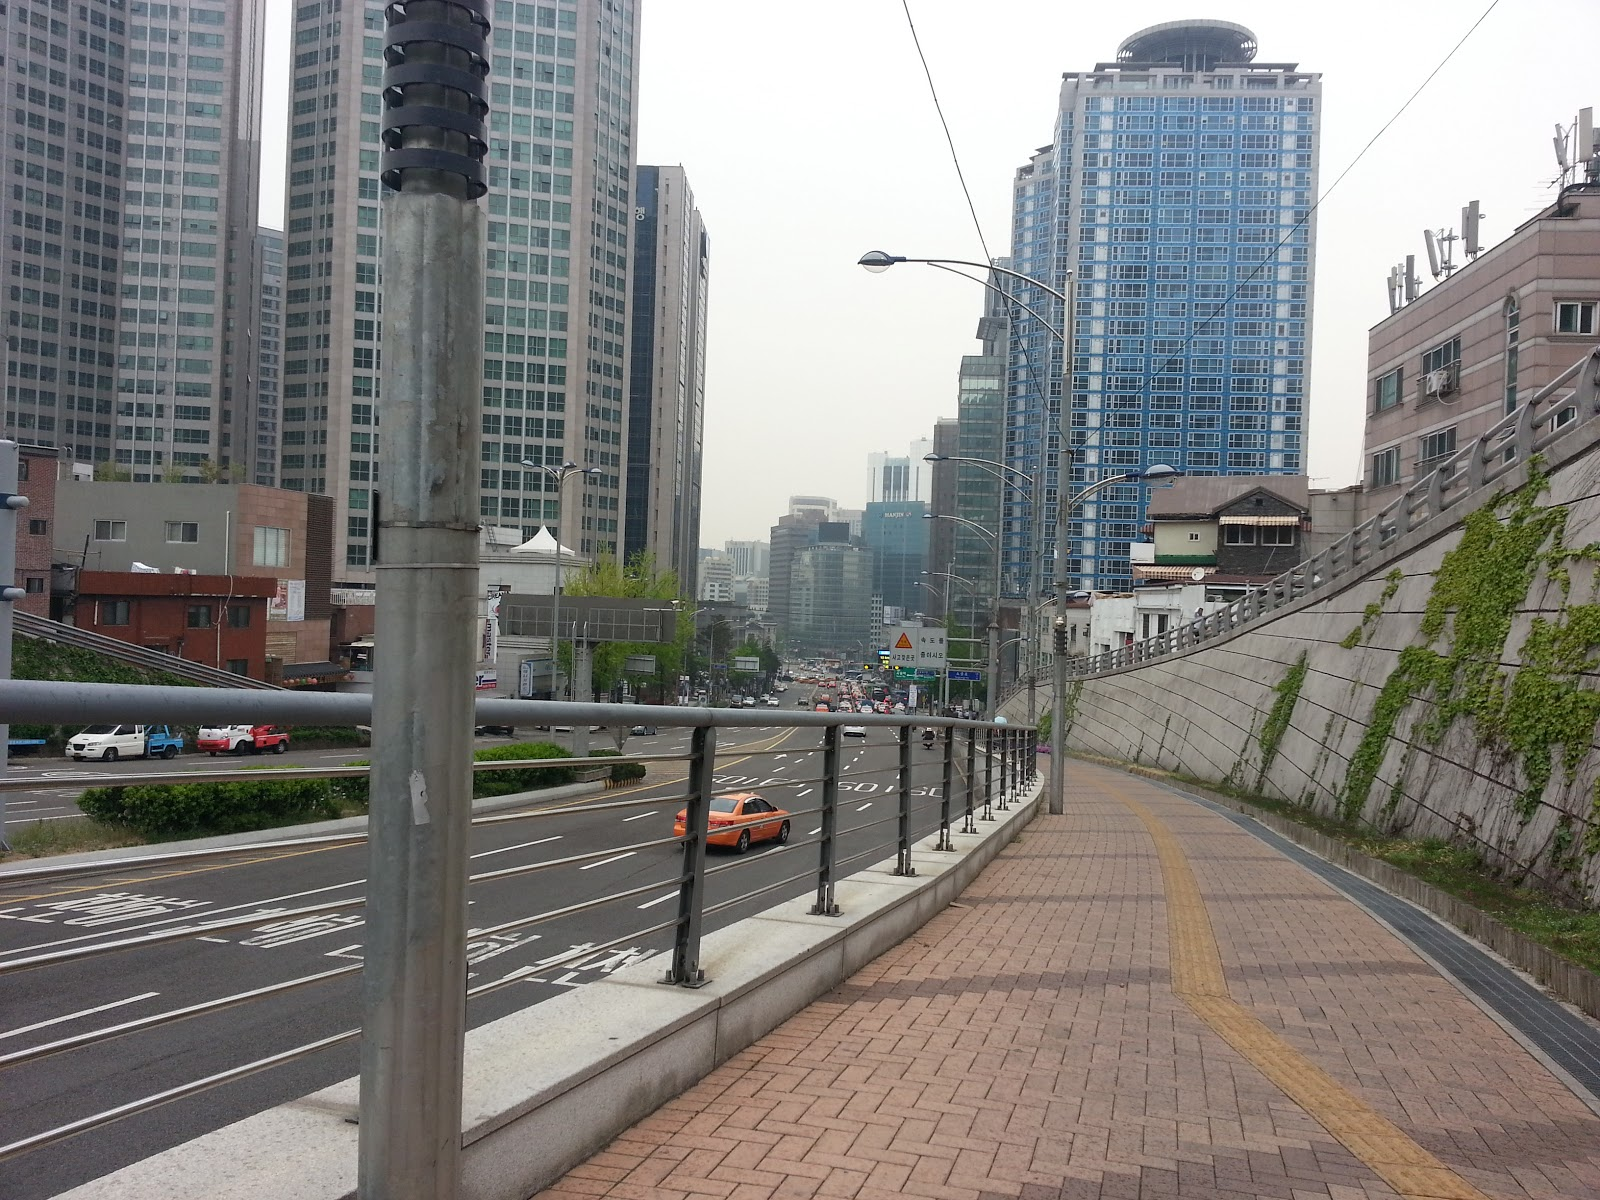 Namsan cable car - The Namsan Oreumi Is A Free Outdoor Elevator That Runs Between The Plaza In Front Of The Namsan Tunnel 3 Commemorative Plaza And The Namsan Cable Car